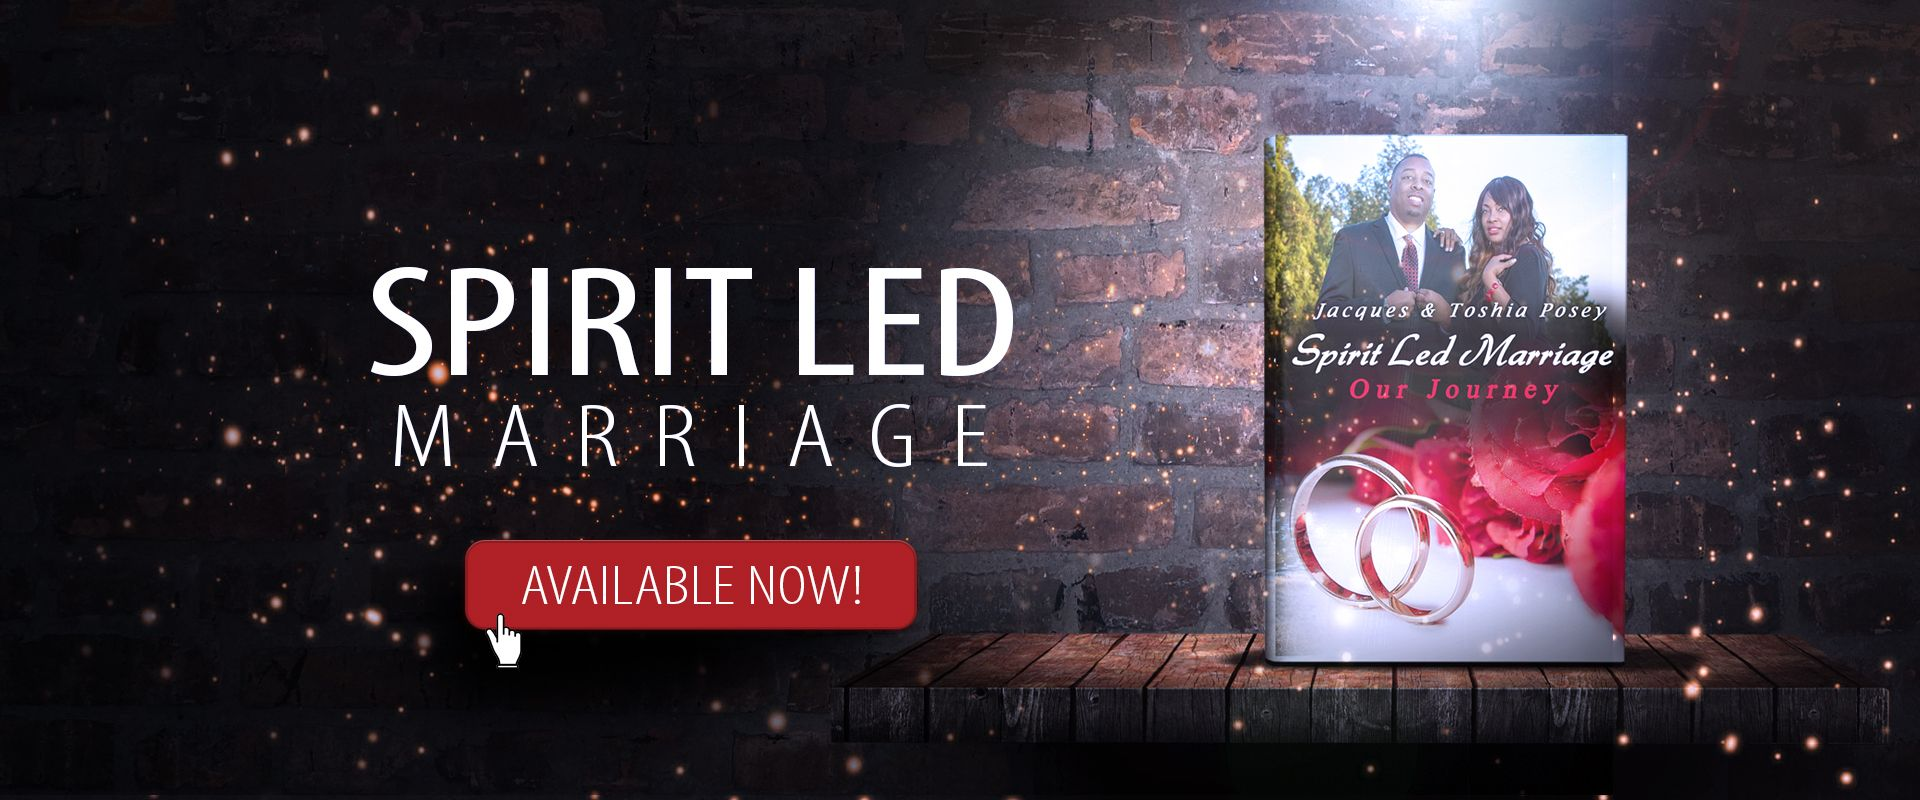 spirit-led-marriage-banner